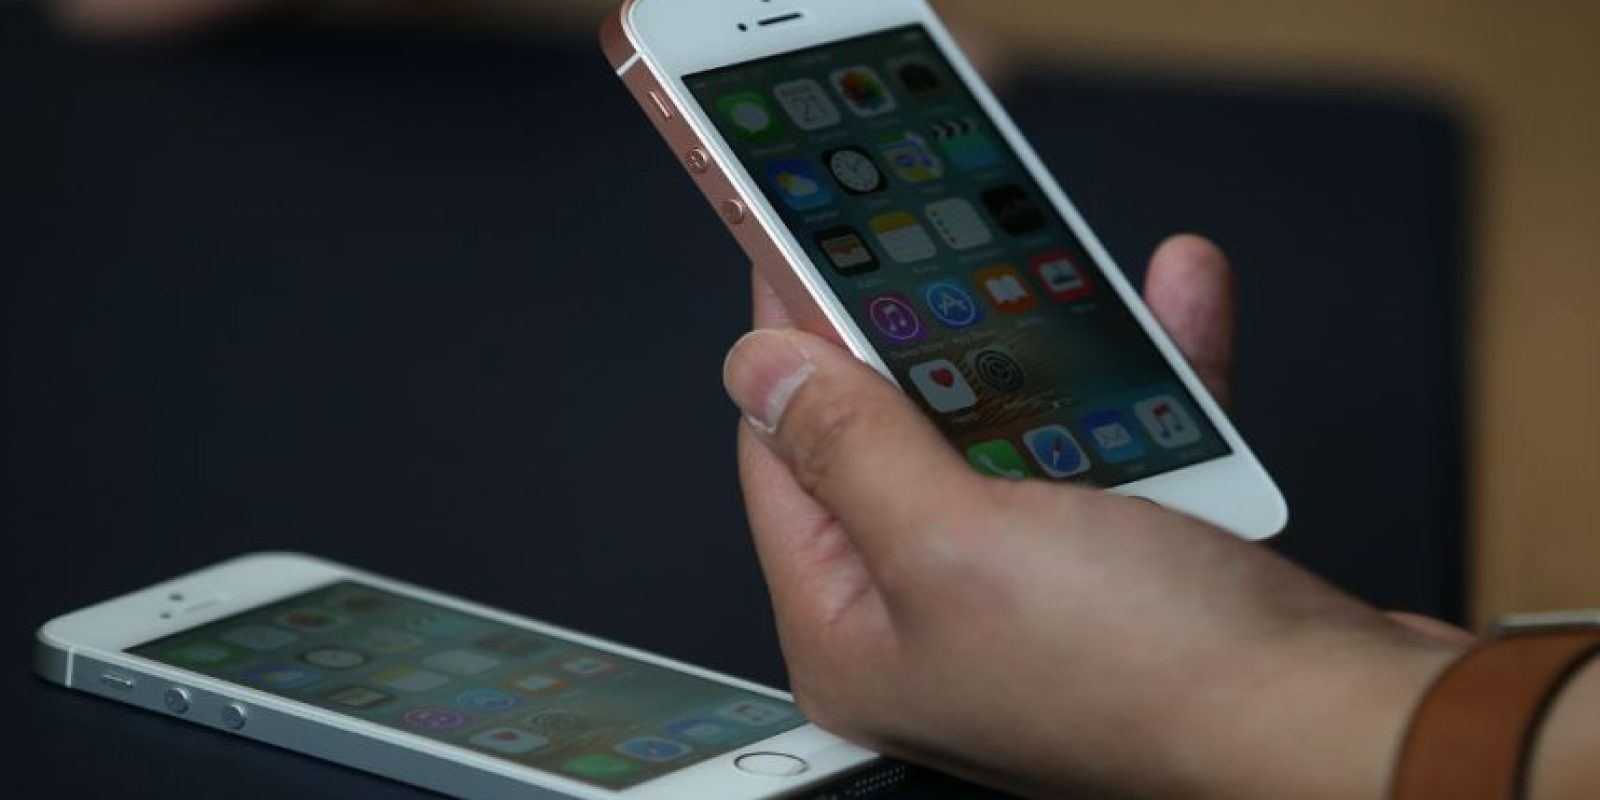 El iPhone no cuentan con memoria externa. Foto: Getty Images